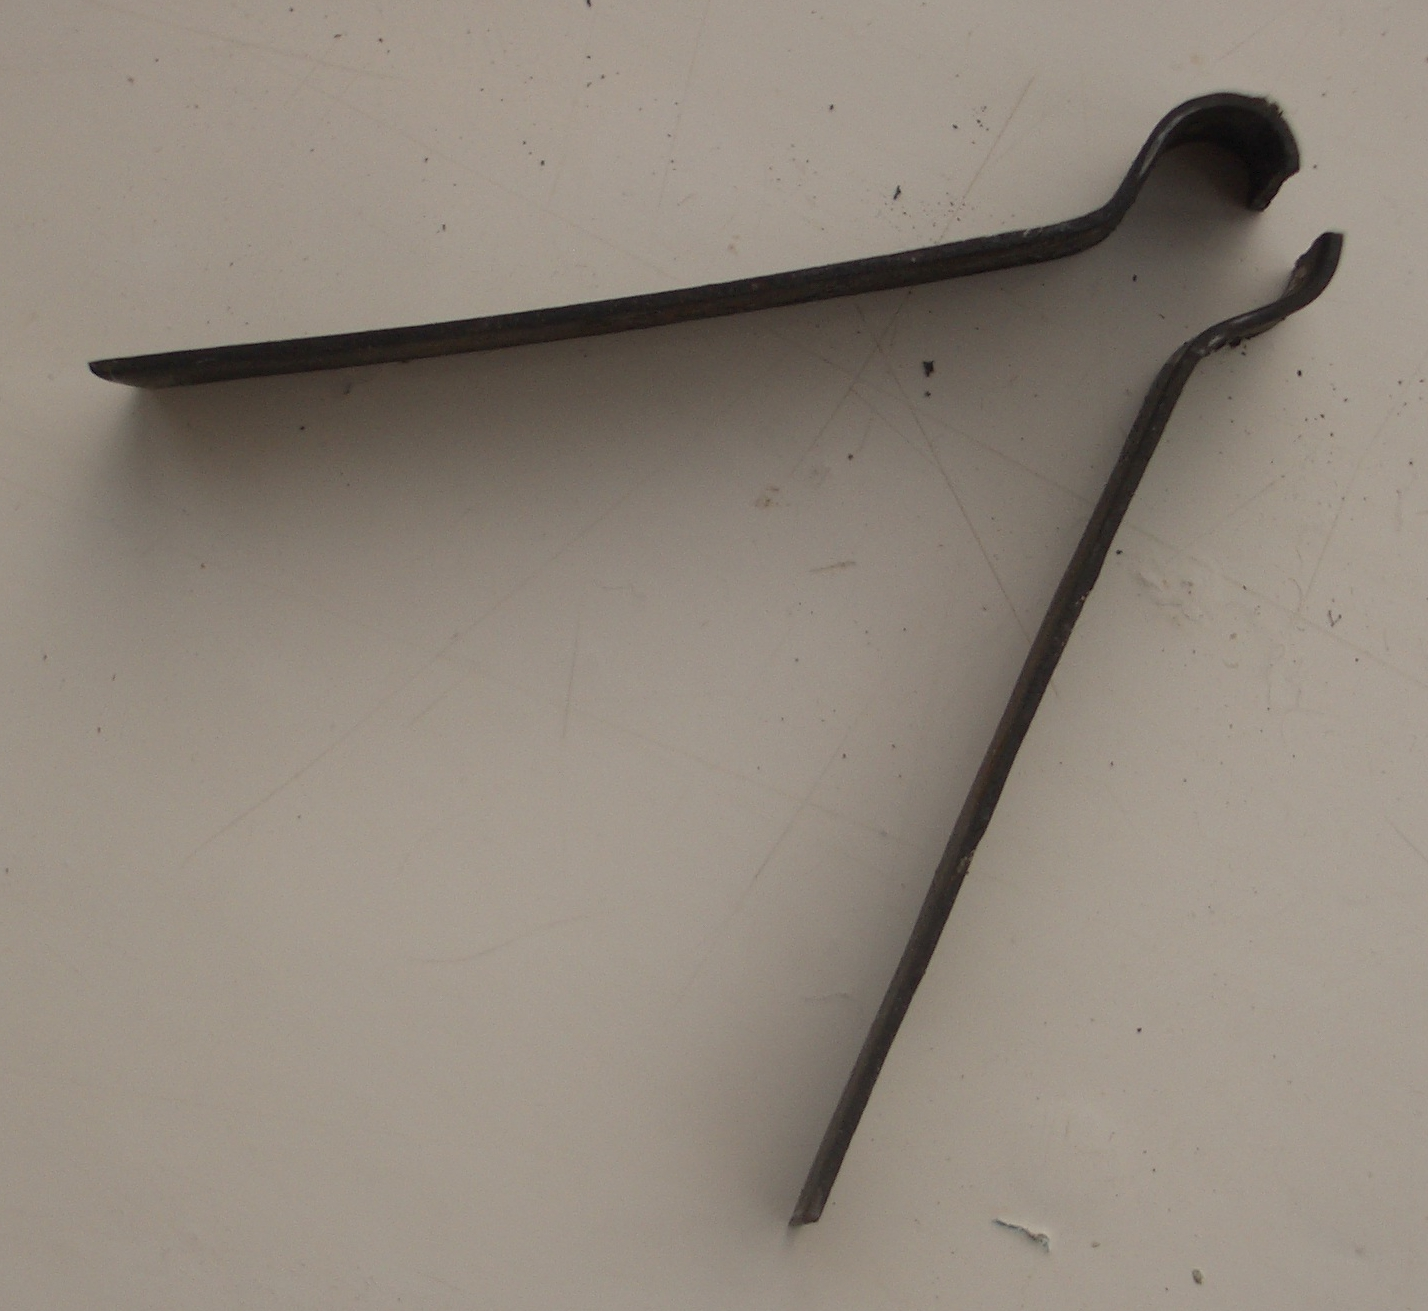 Picture of Find the Broken Spring